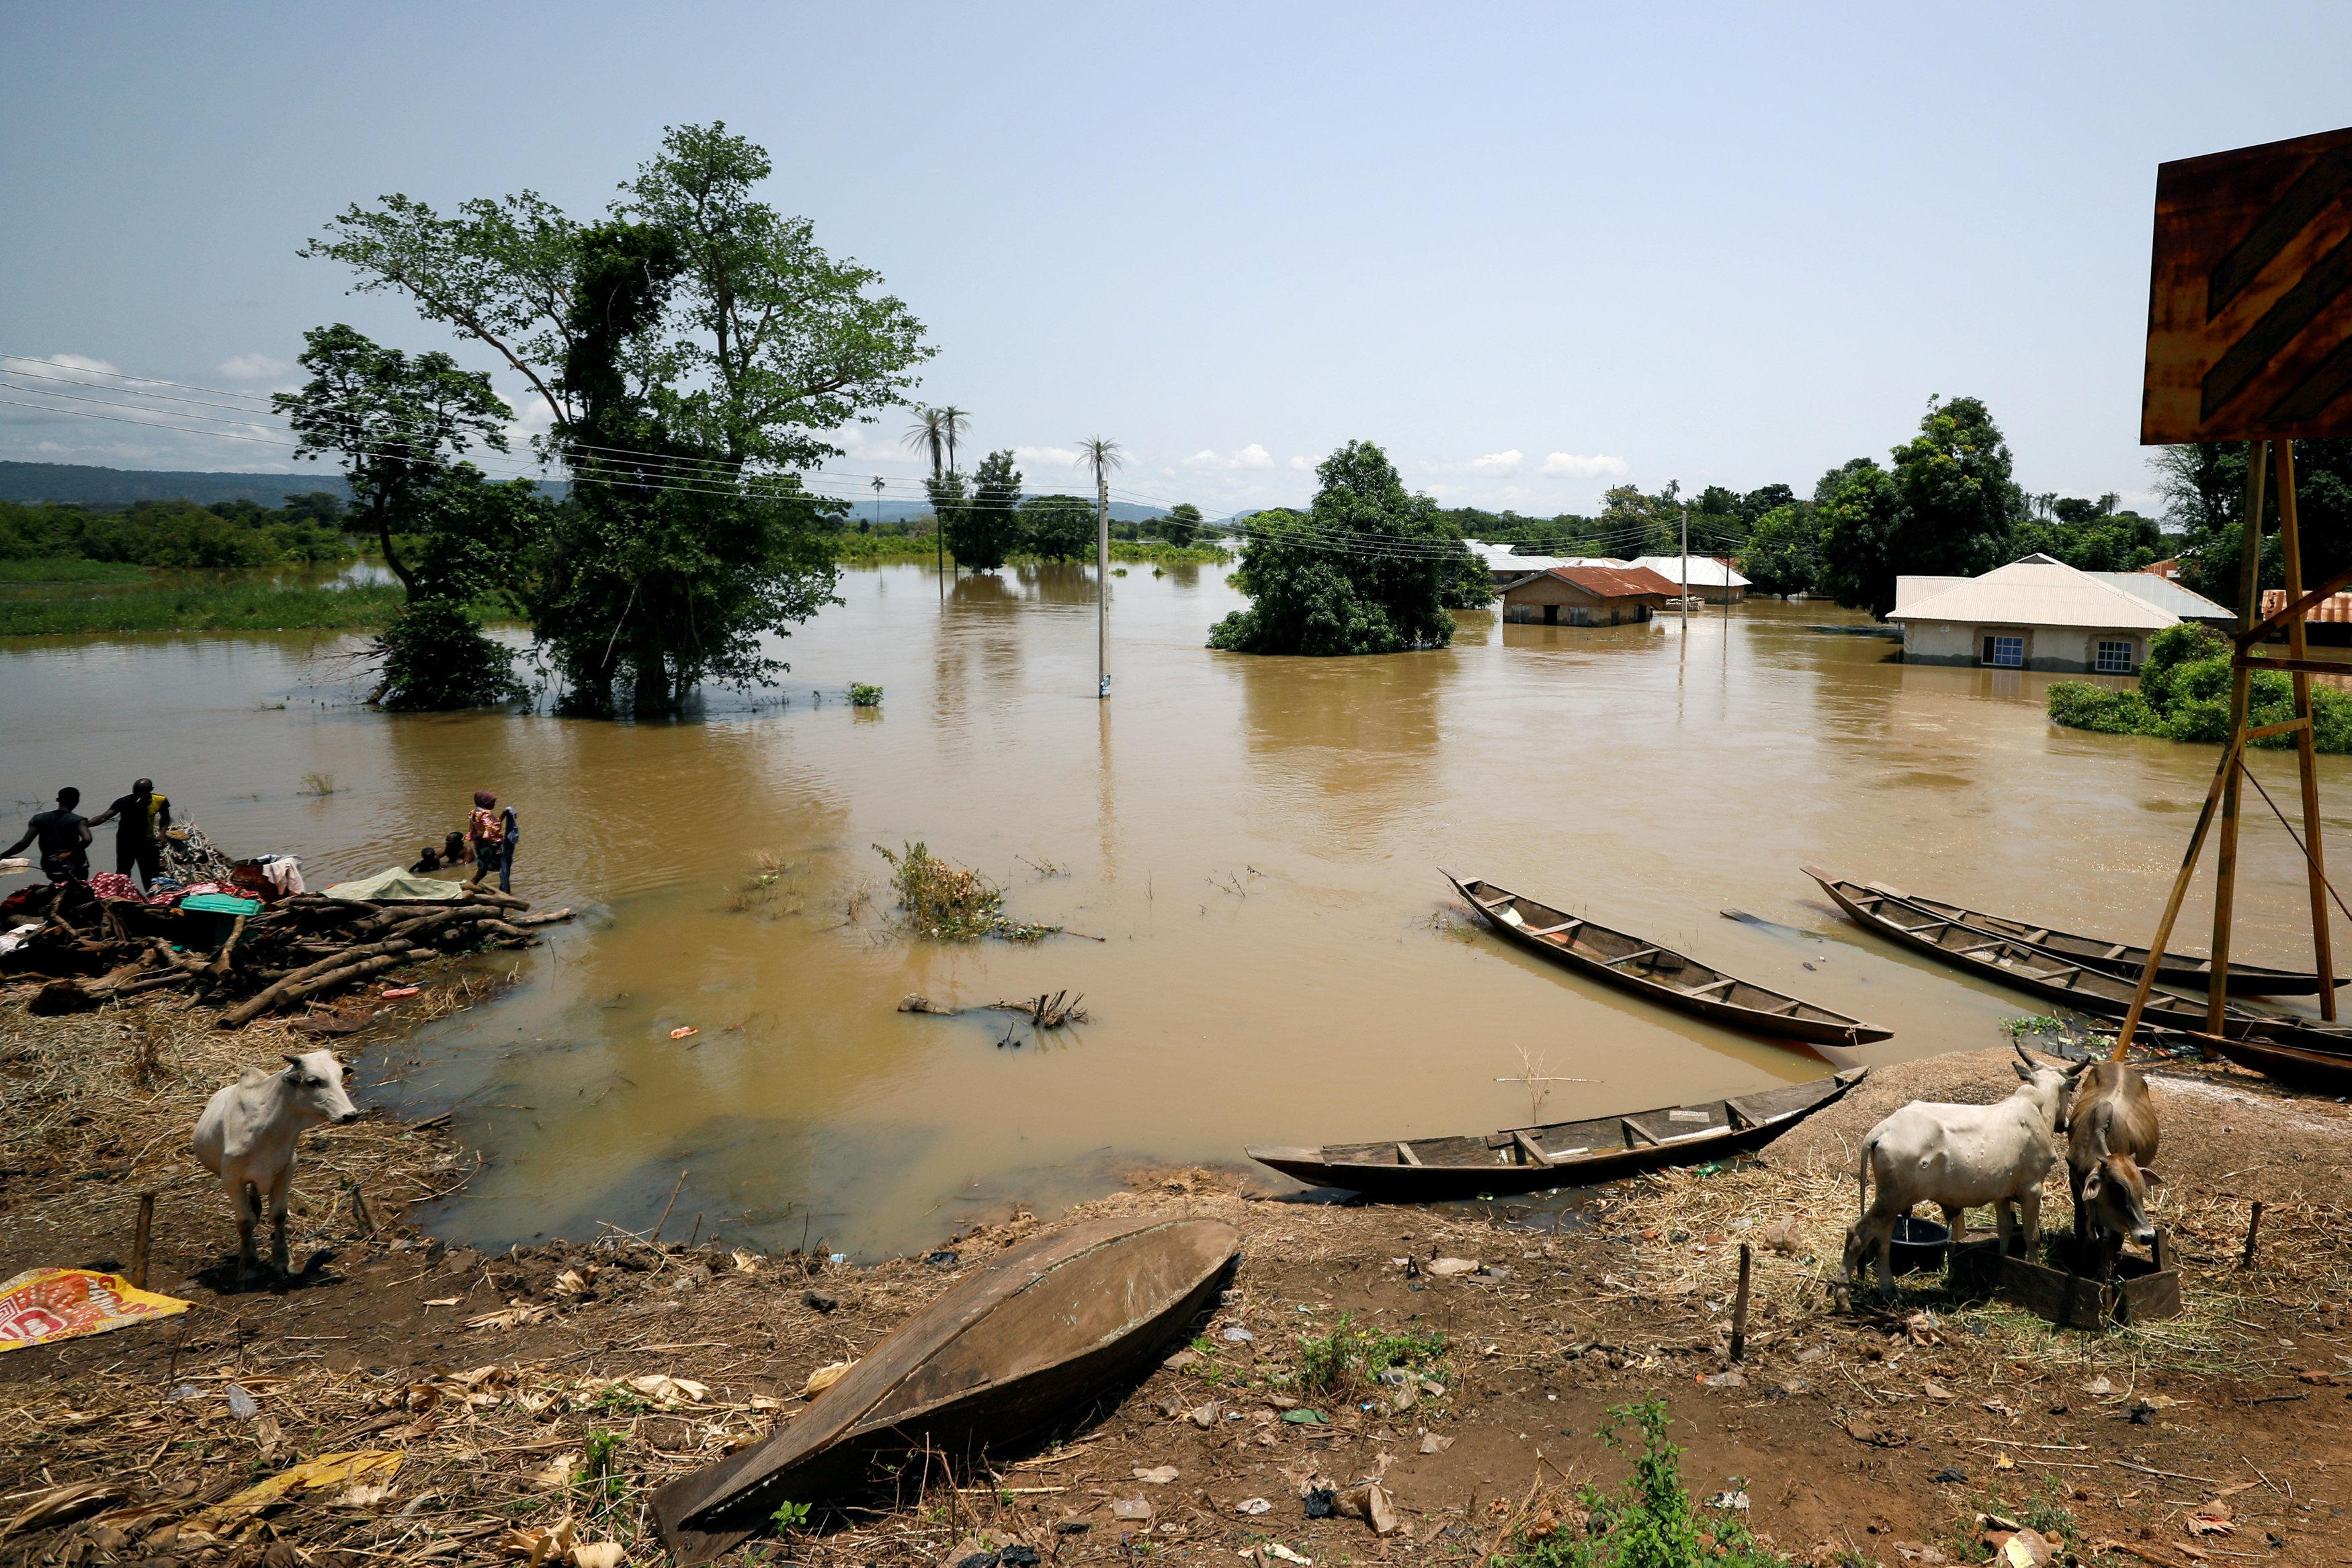 Partially submerged houses are pictured in flood waters in Kogi State, Nigeria September 17, 2018. Afolabi Sotunde